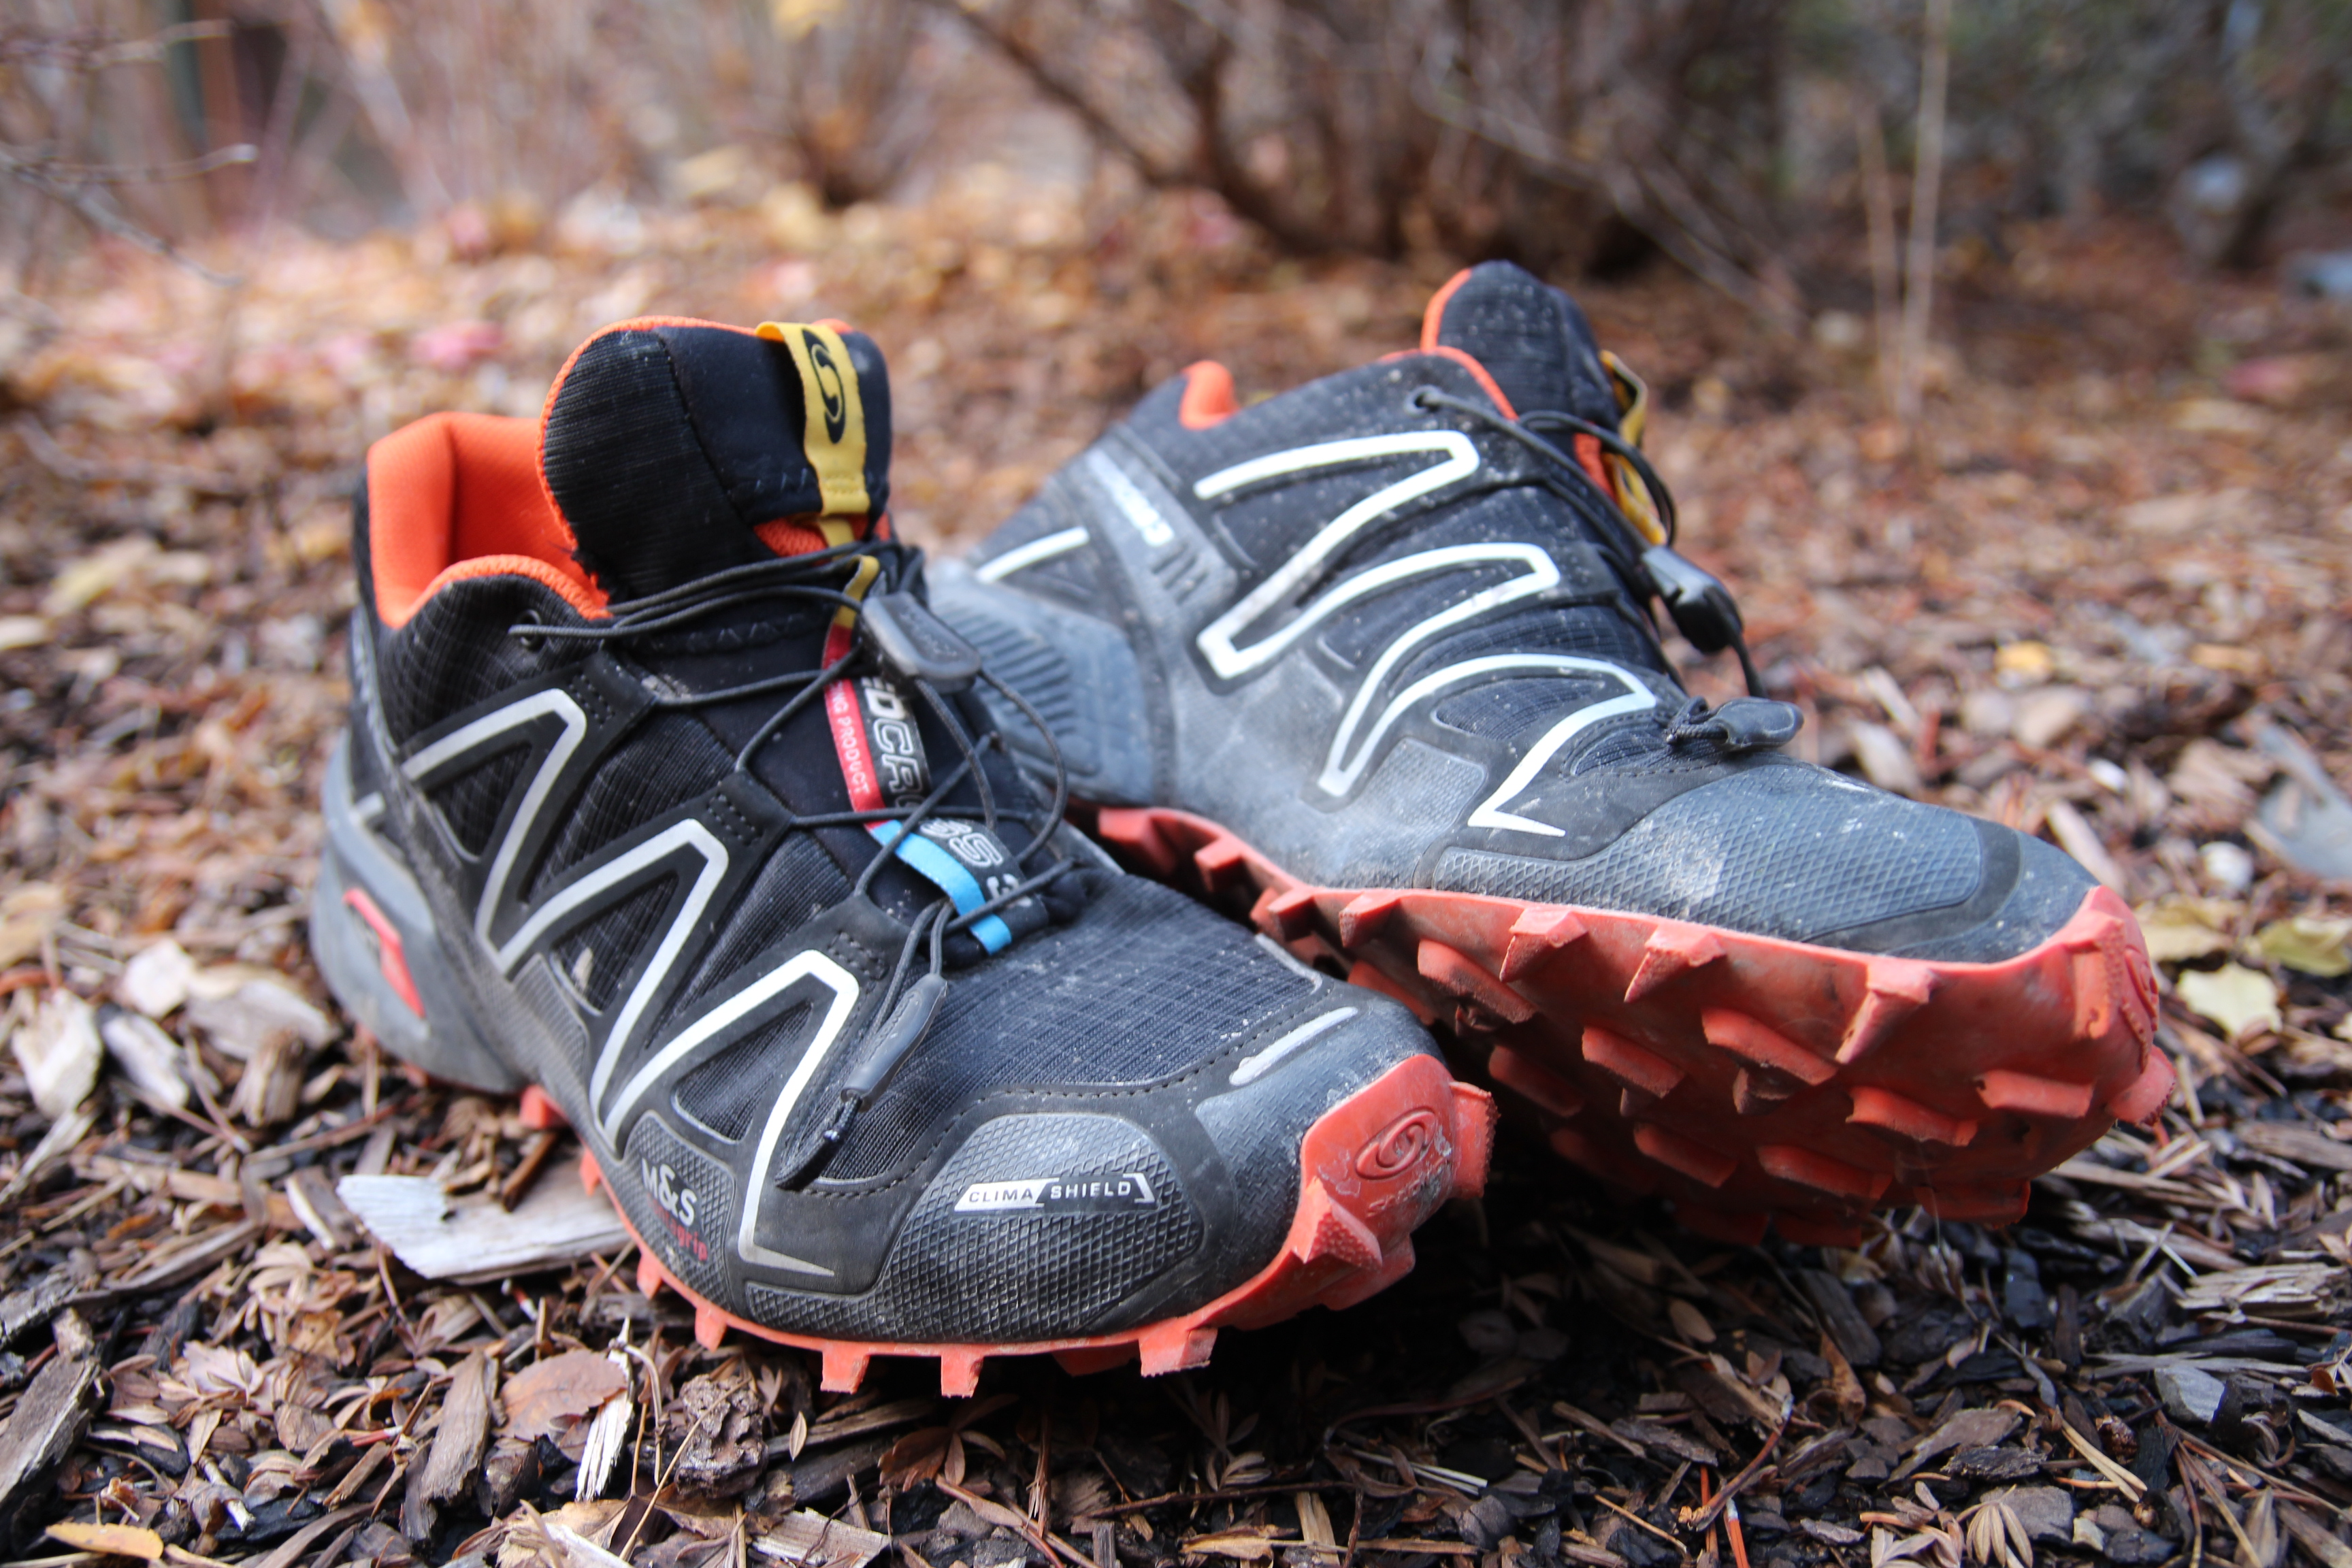 Field Tested Review: Salomon Speedcross 3 Trail Runner